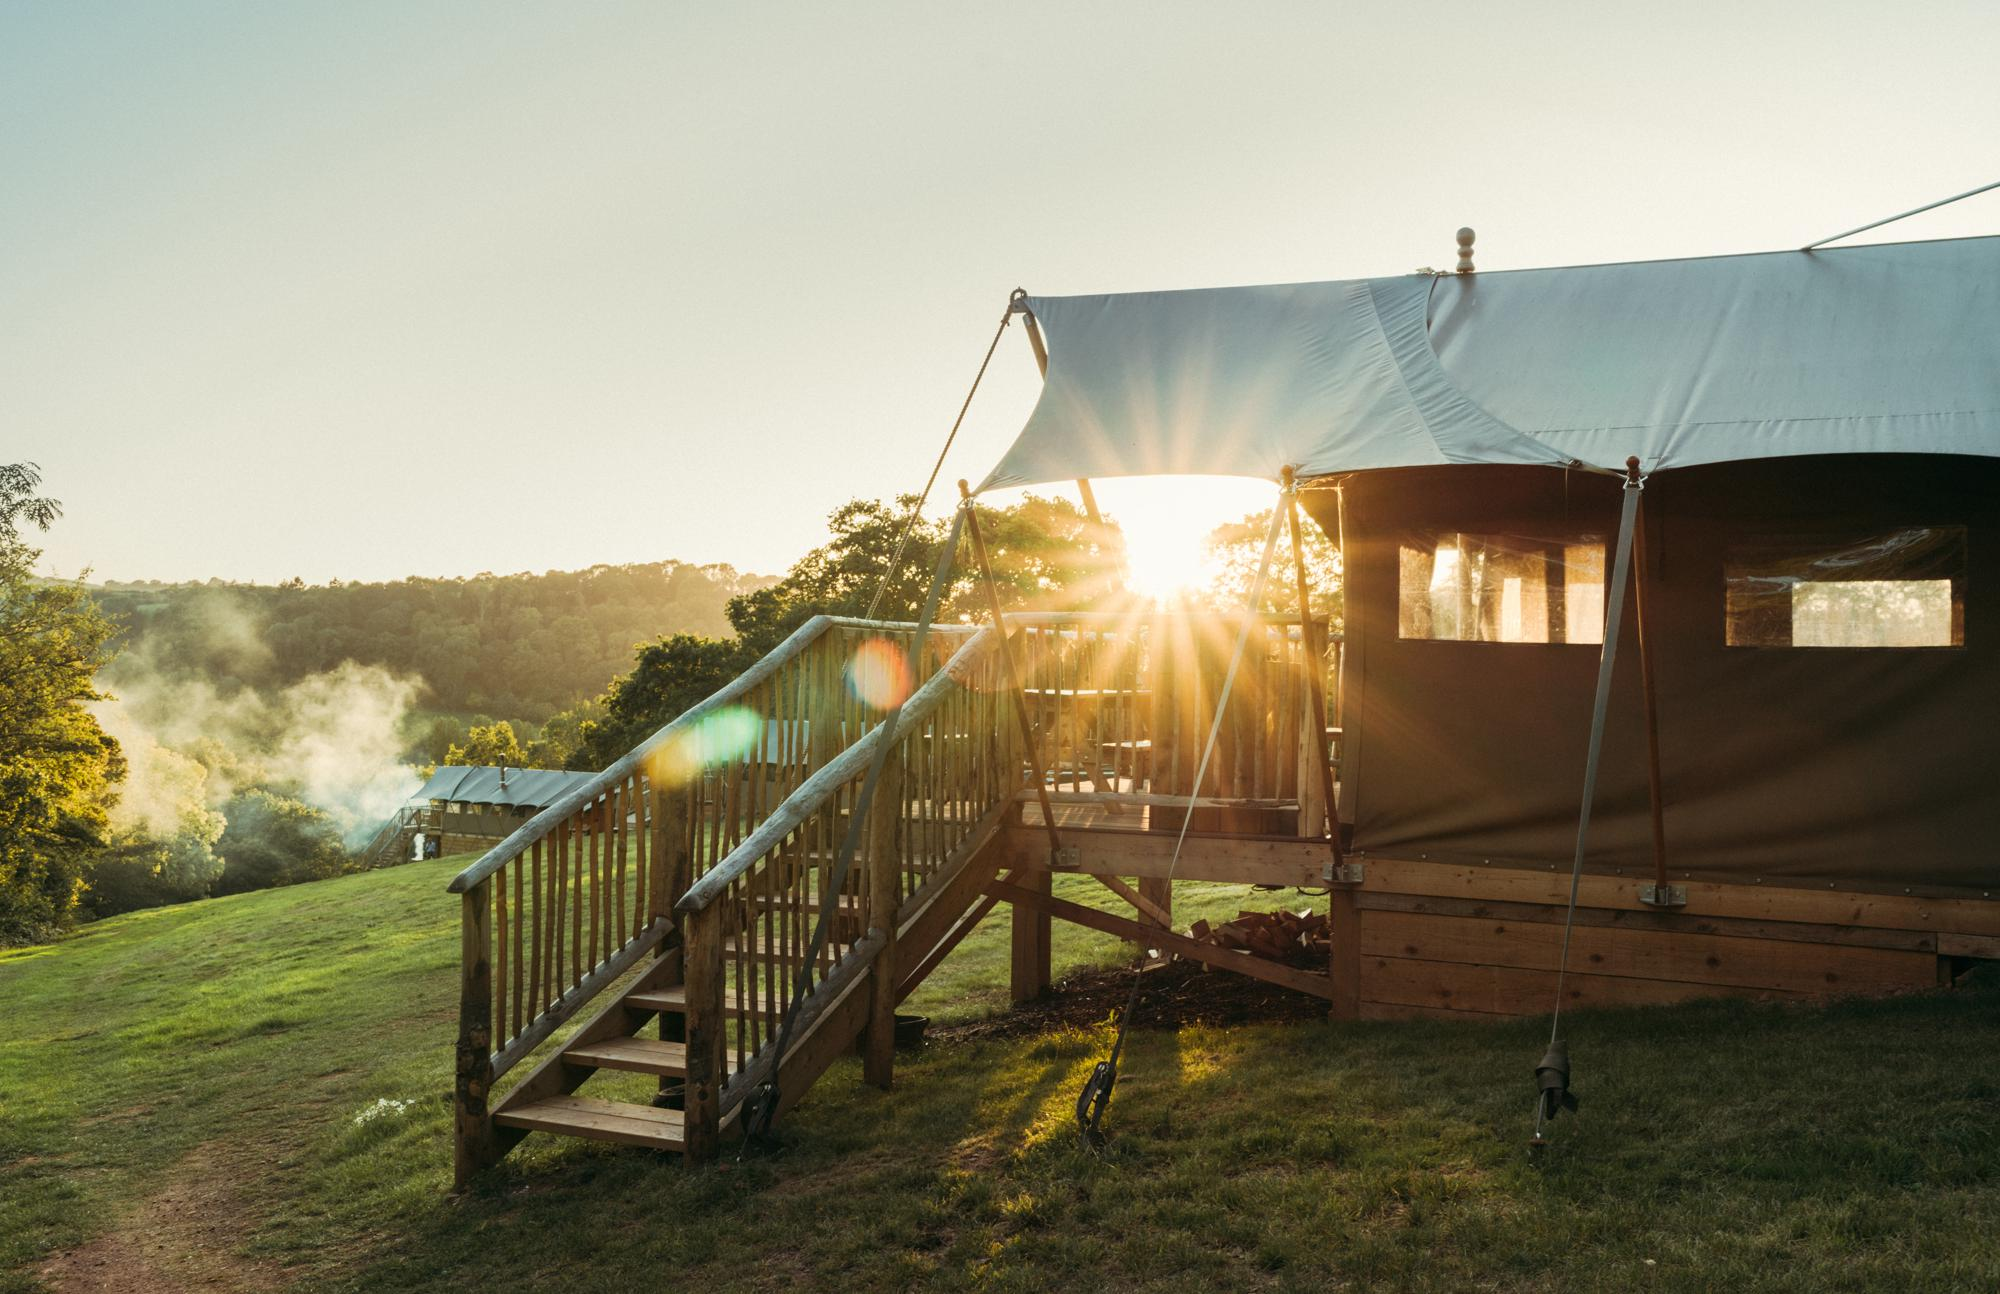 Book your next UK Glamping holiday direct with Cool Places.